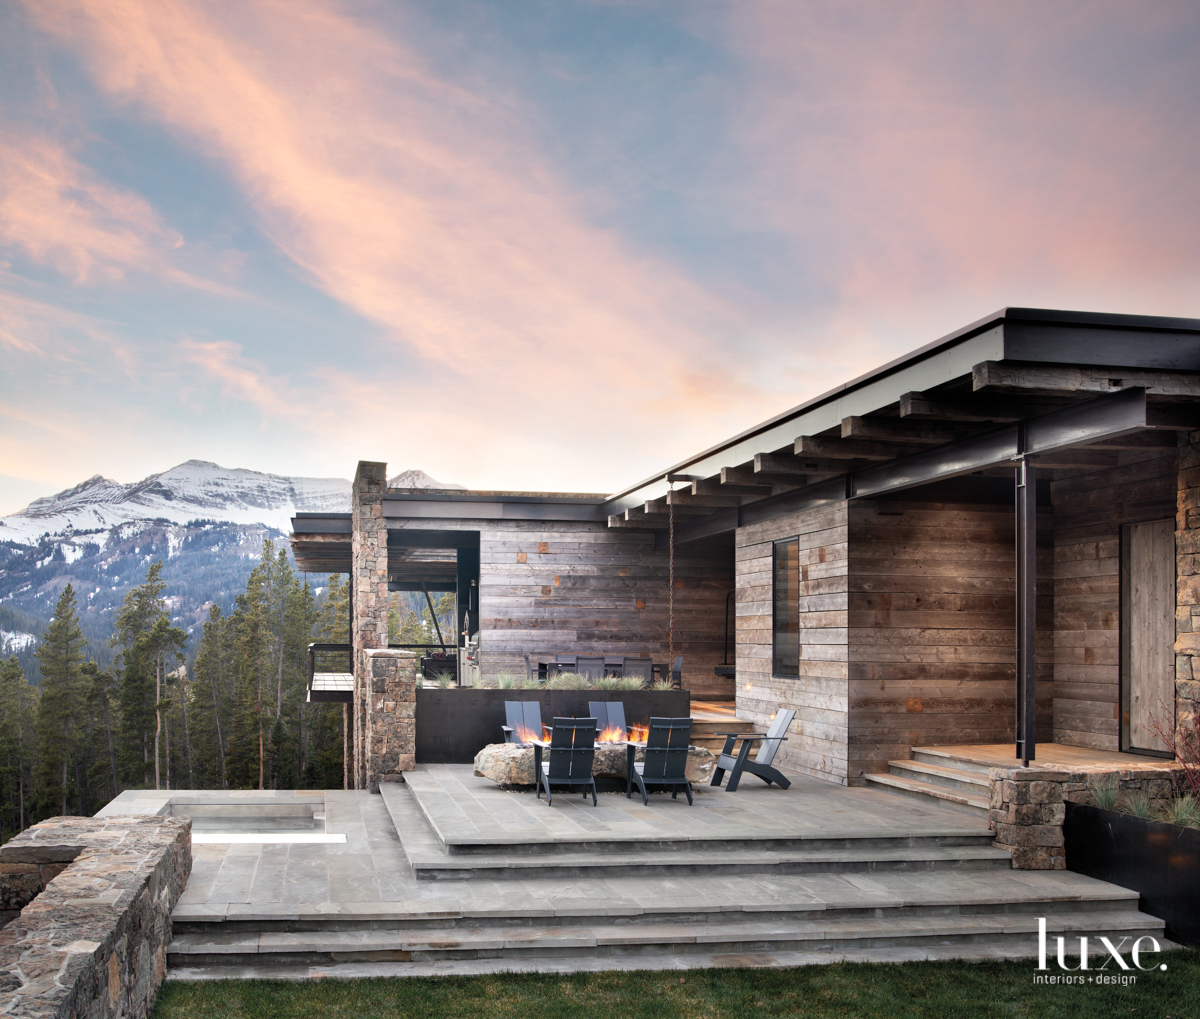 A Special Montana Dwelling Pays Tribute To The Mountains With Majestic Modesty {A Special Montana Dwelling Pays Tribute To The Mountains With Majestic Modesty} – English